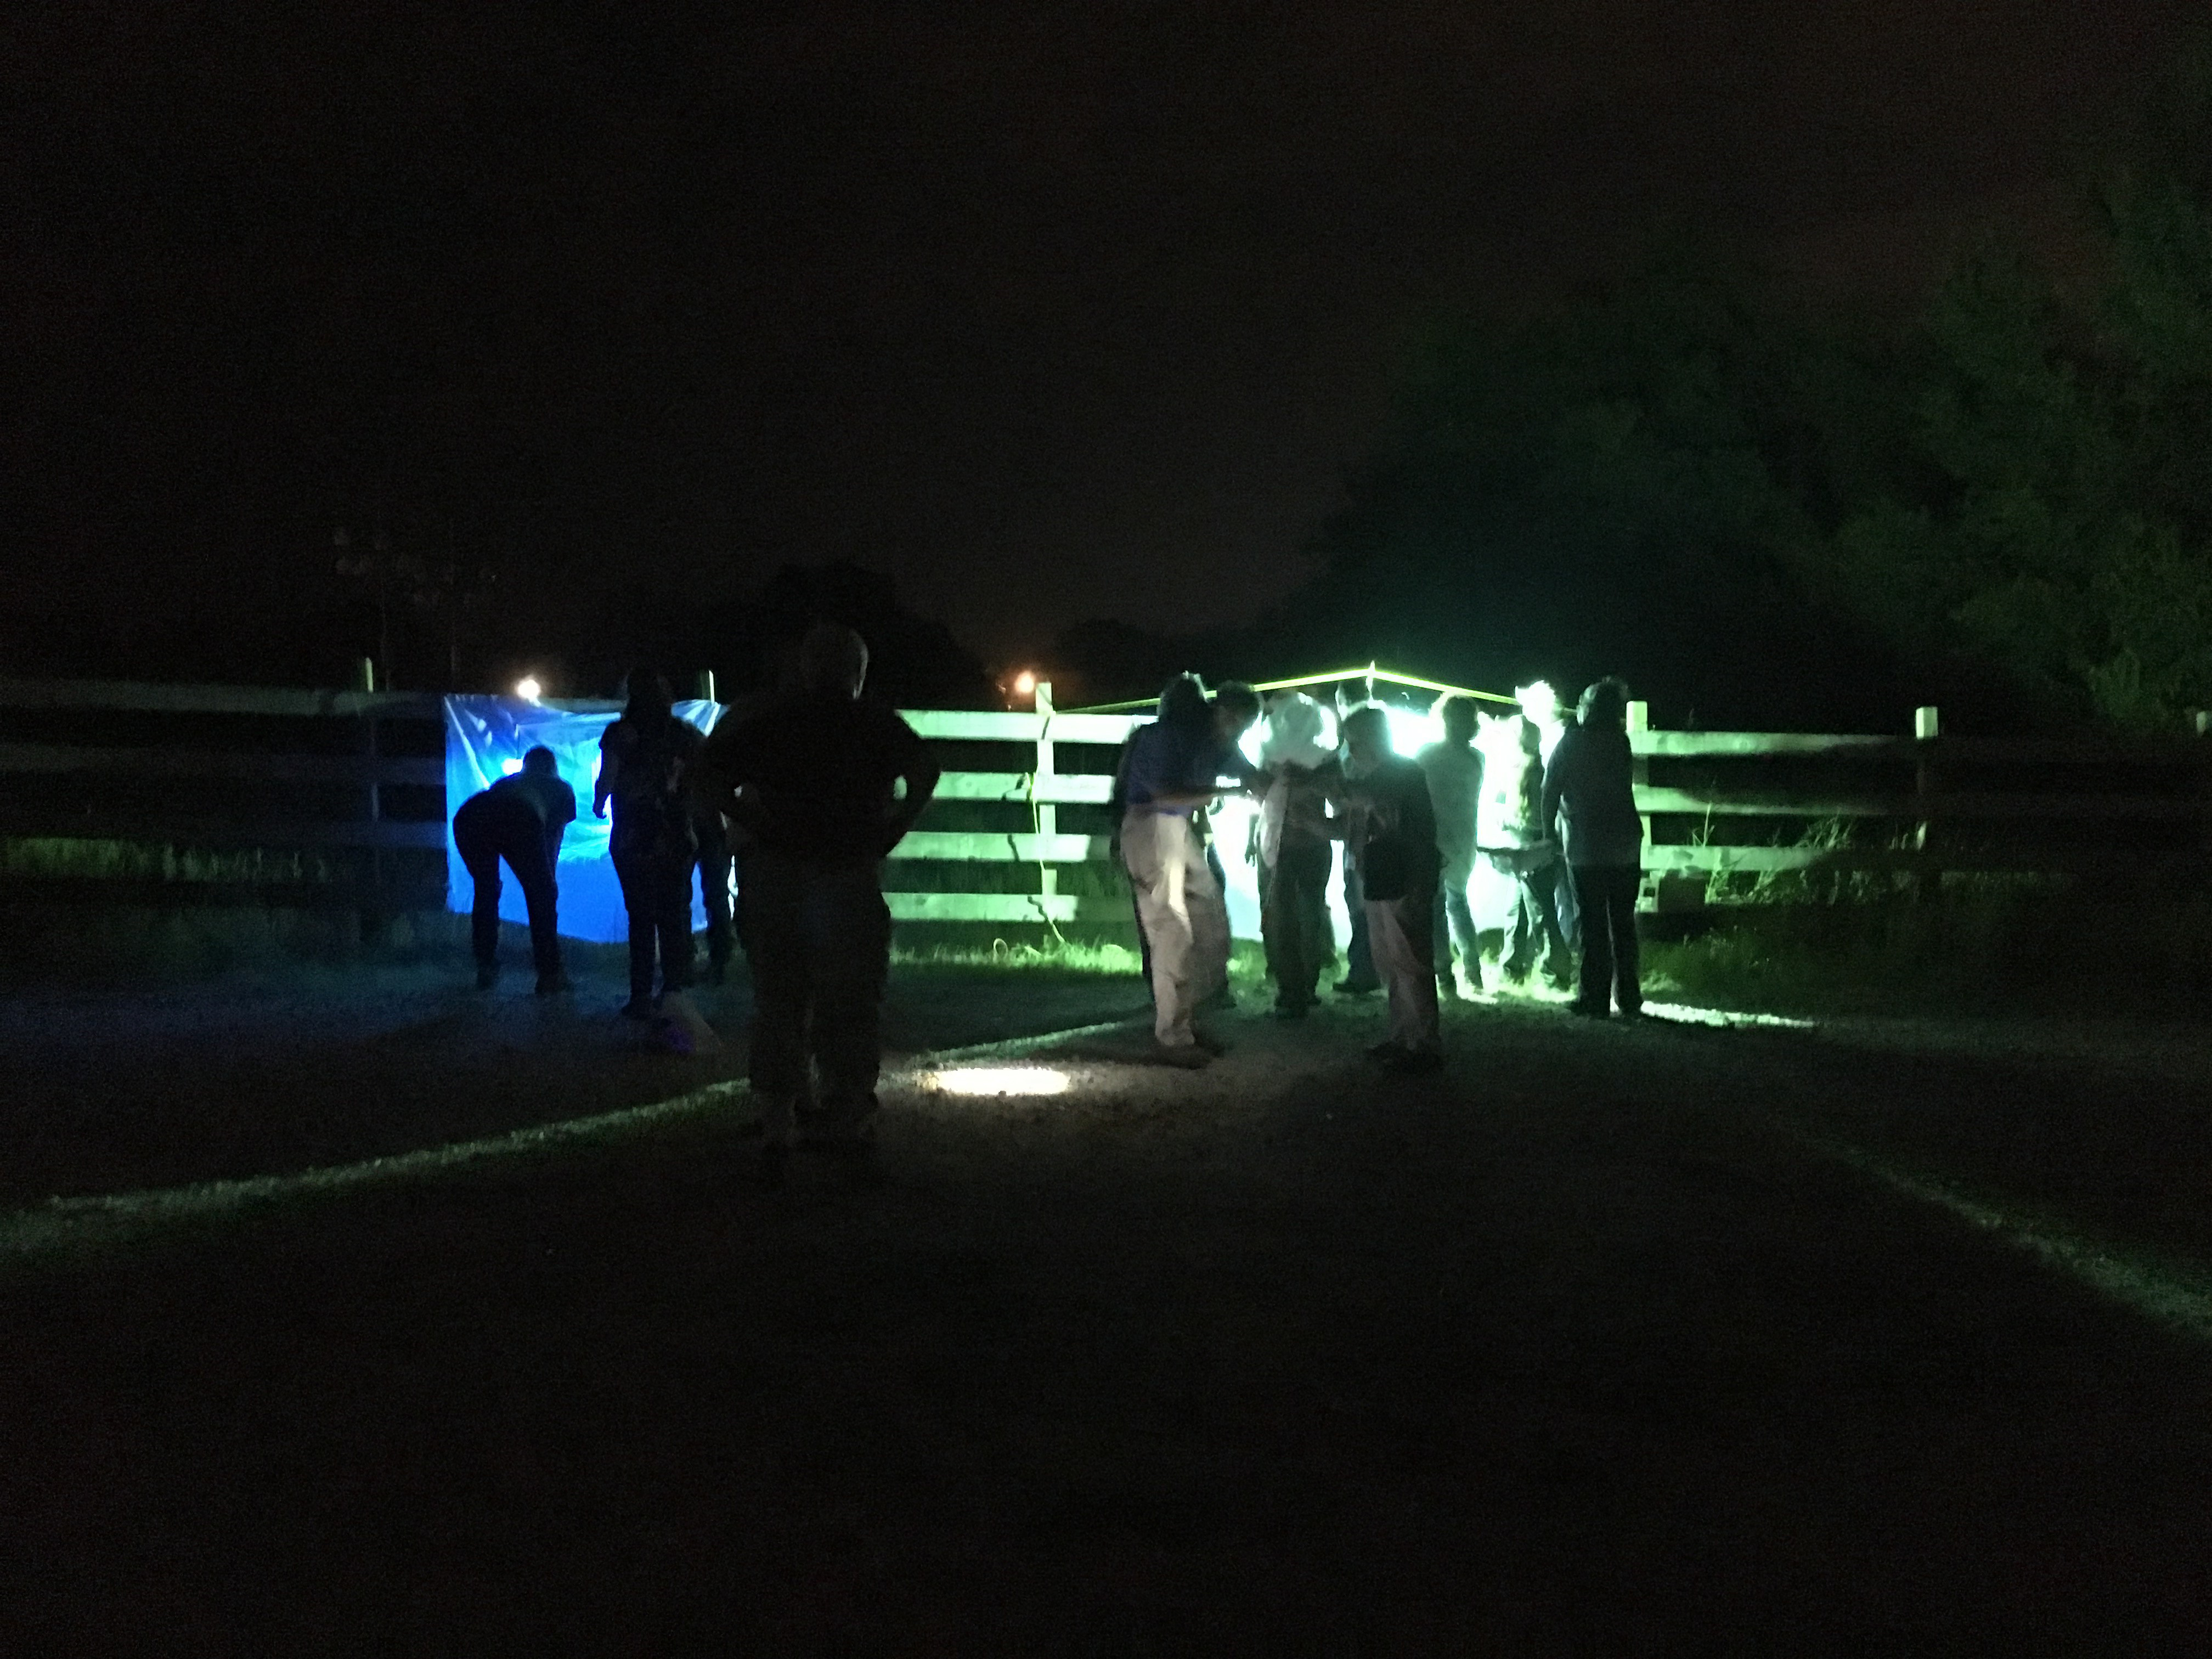 Nighttime collecting at Heard Museum, MVES 9/19/2017